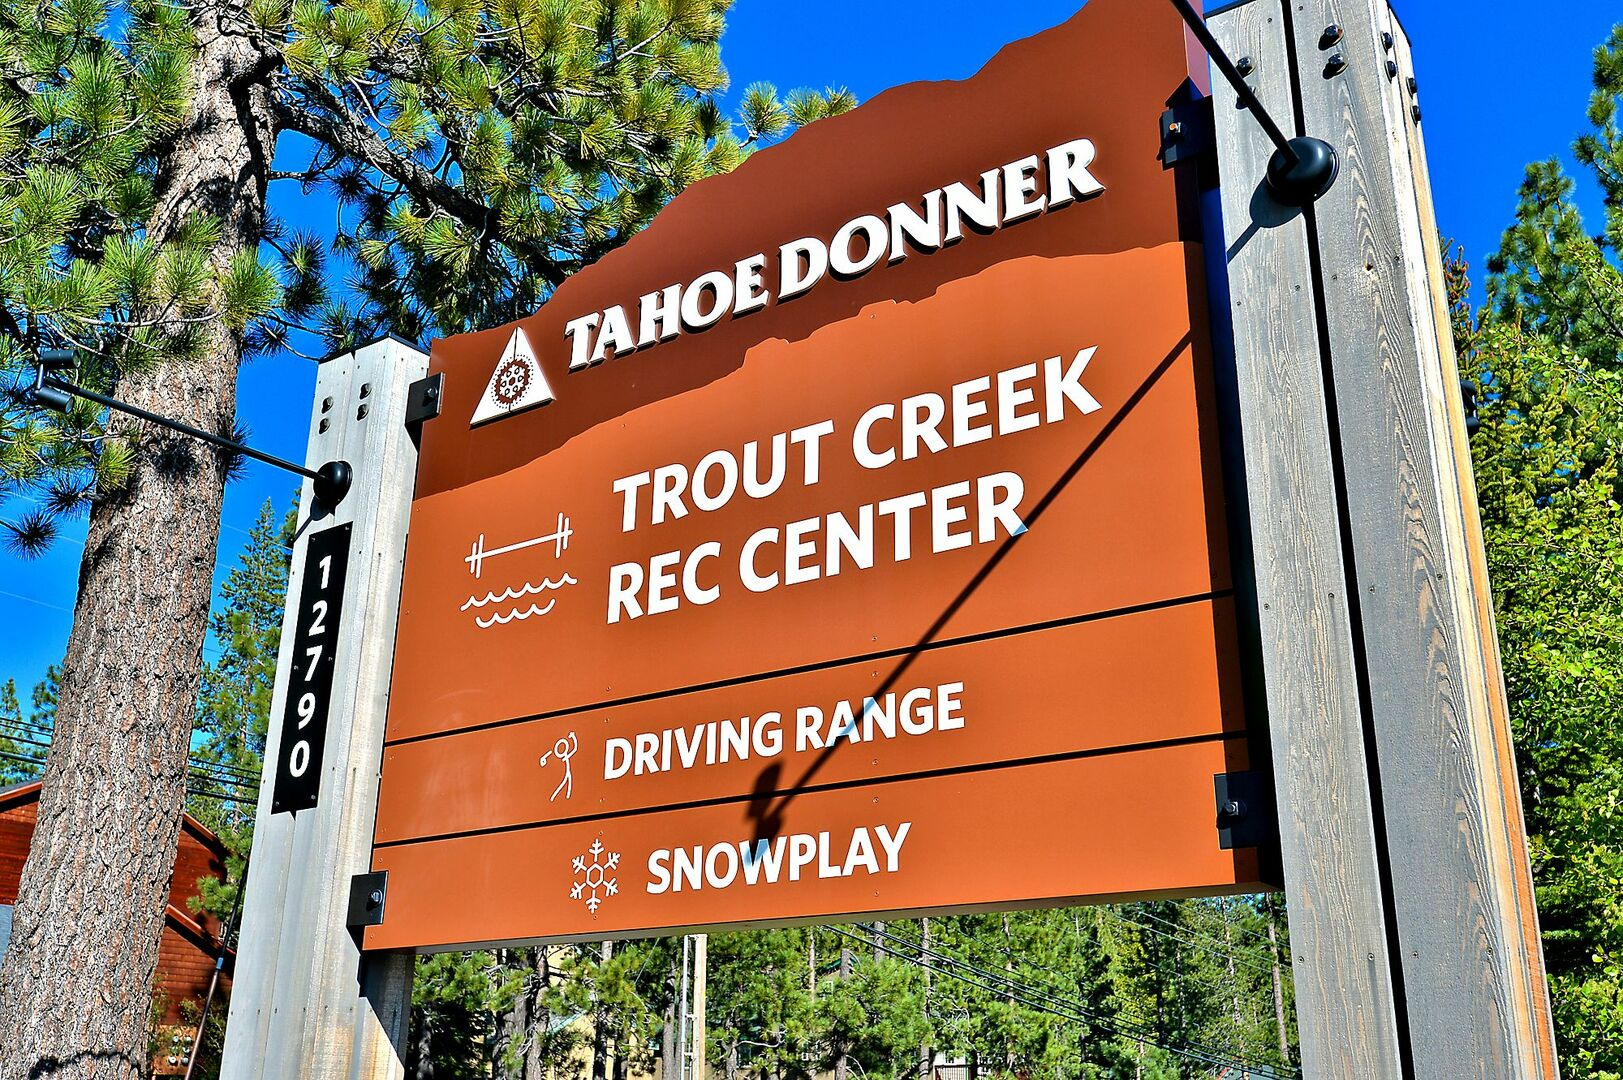 Sign for the Trout Creek Rec Center.